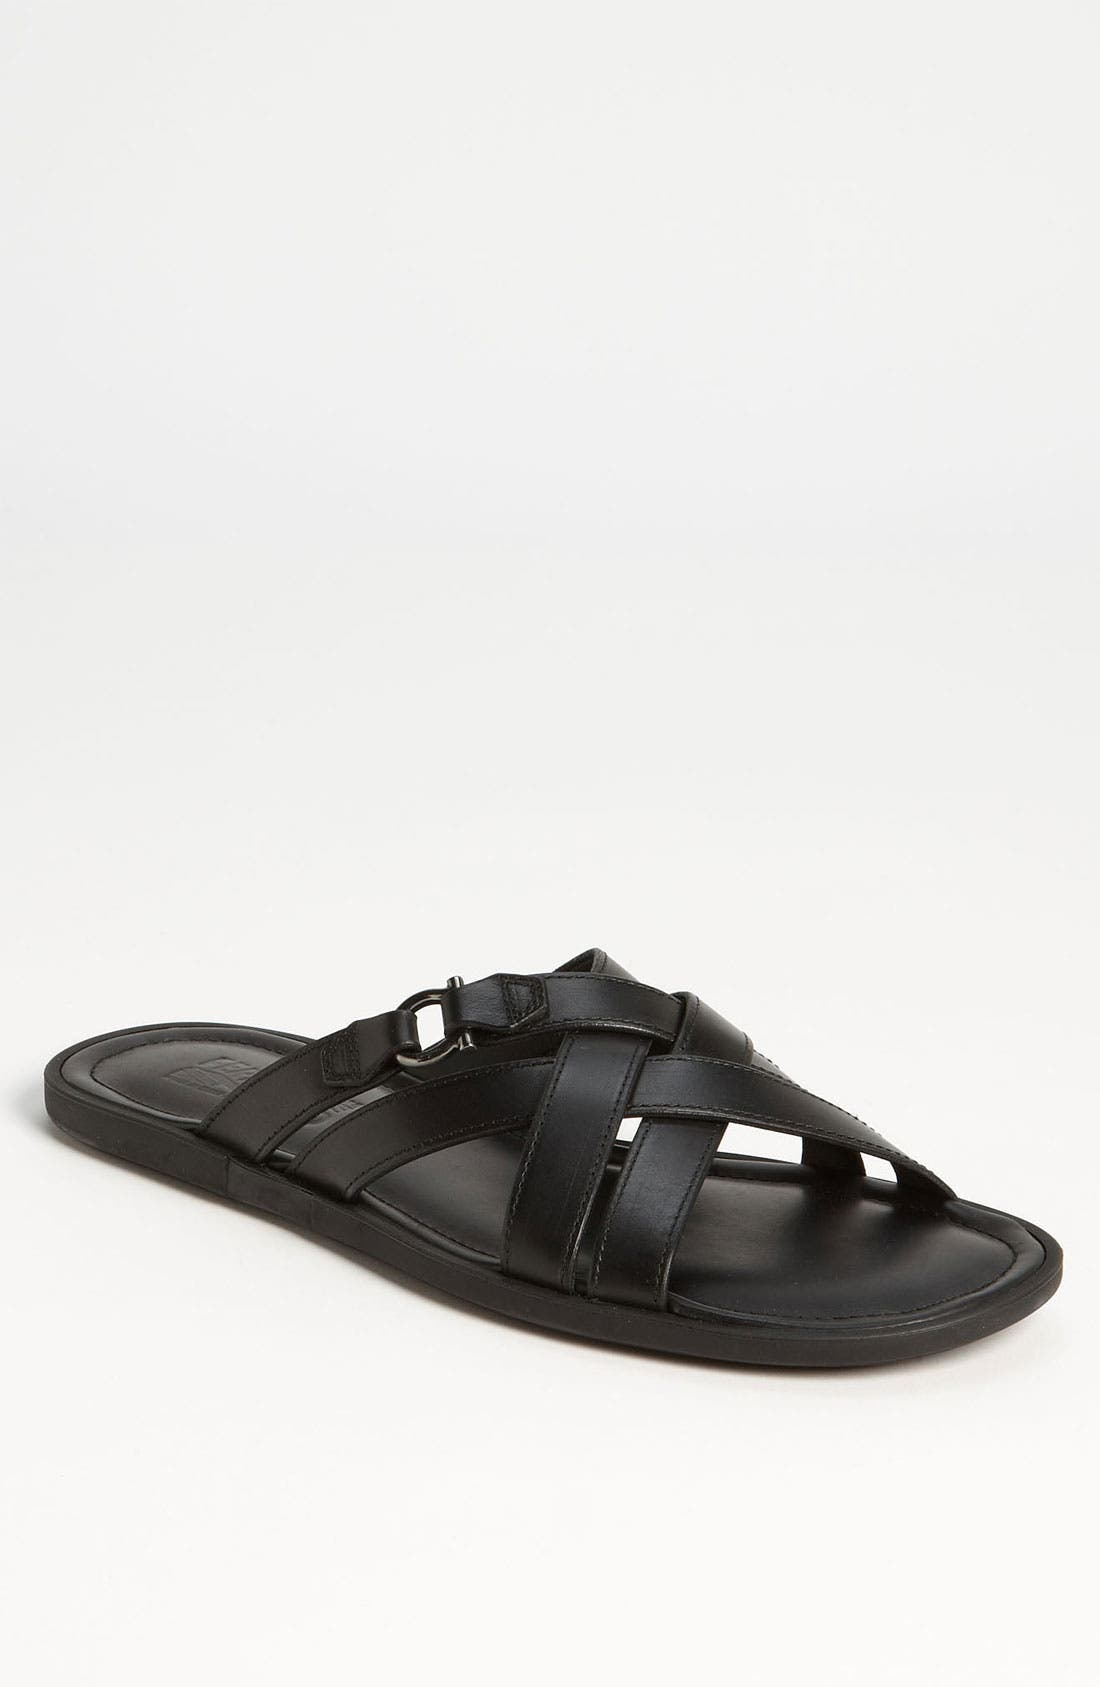 Alternate Image 1 Selected - Salvatore Ferragamo 'Tirreno' Cross Strap Sandal